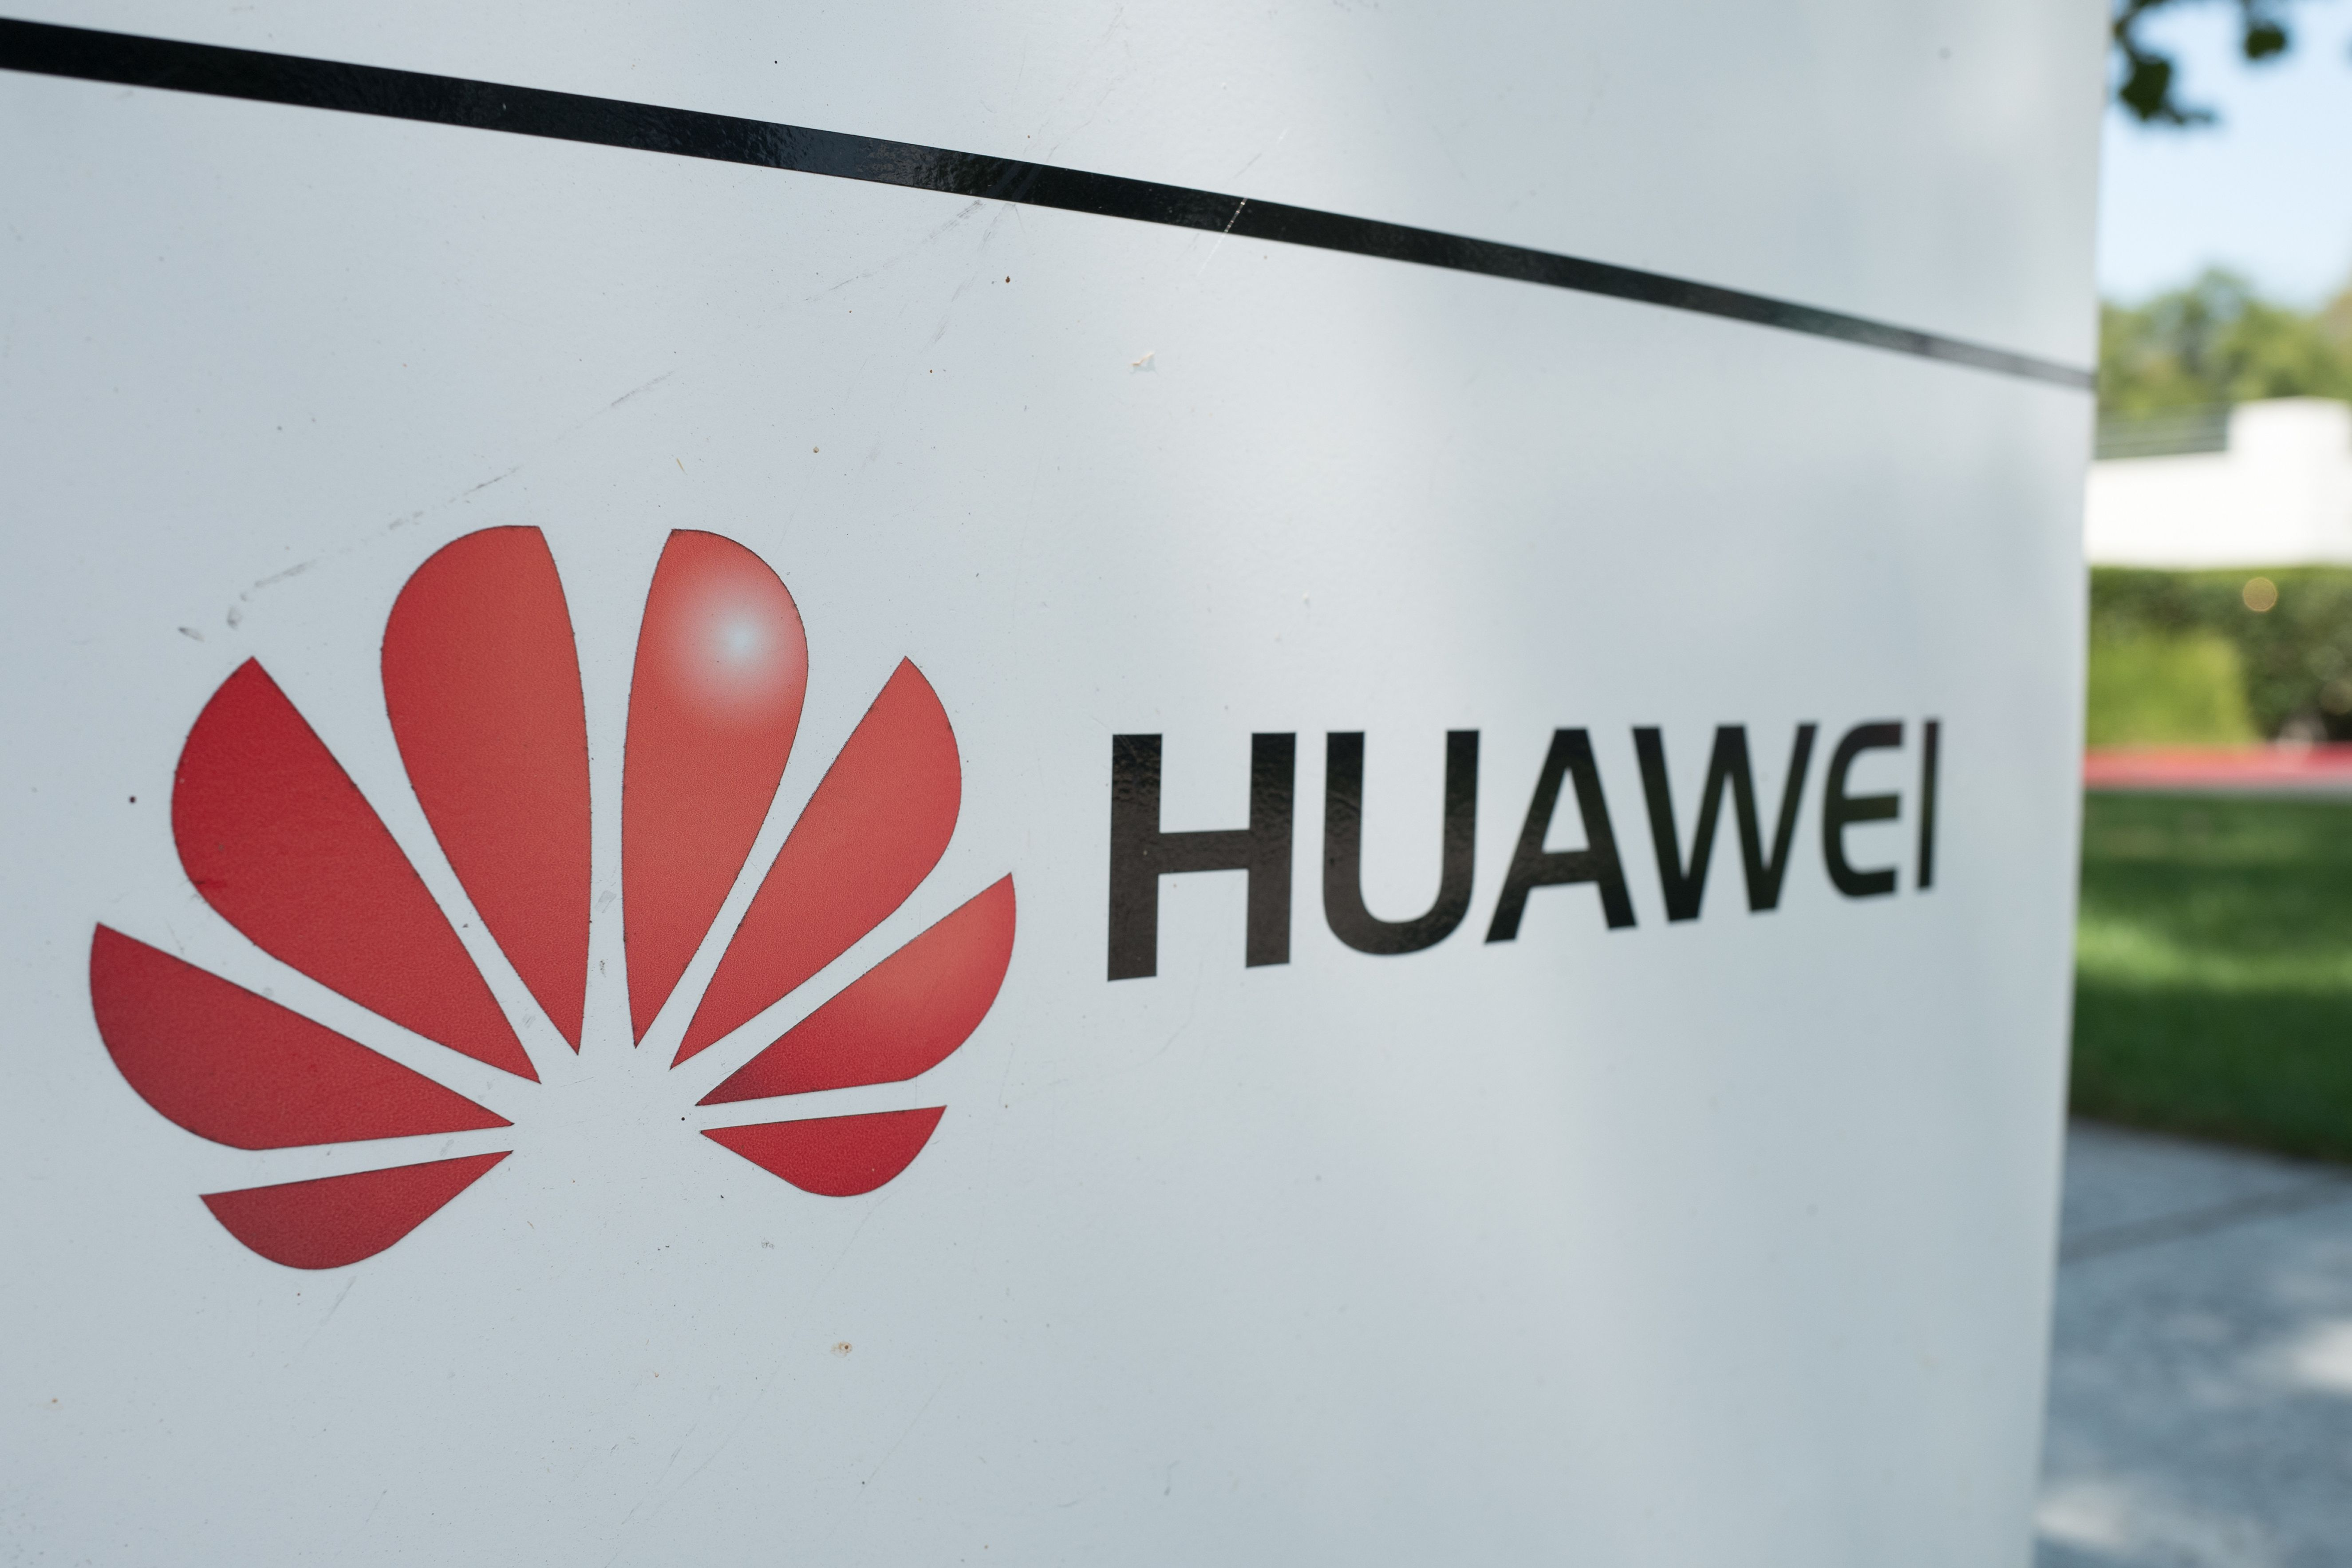 Huawei loses a round against Congress in federal court - Axios